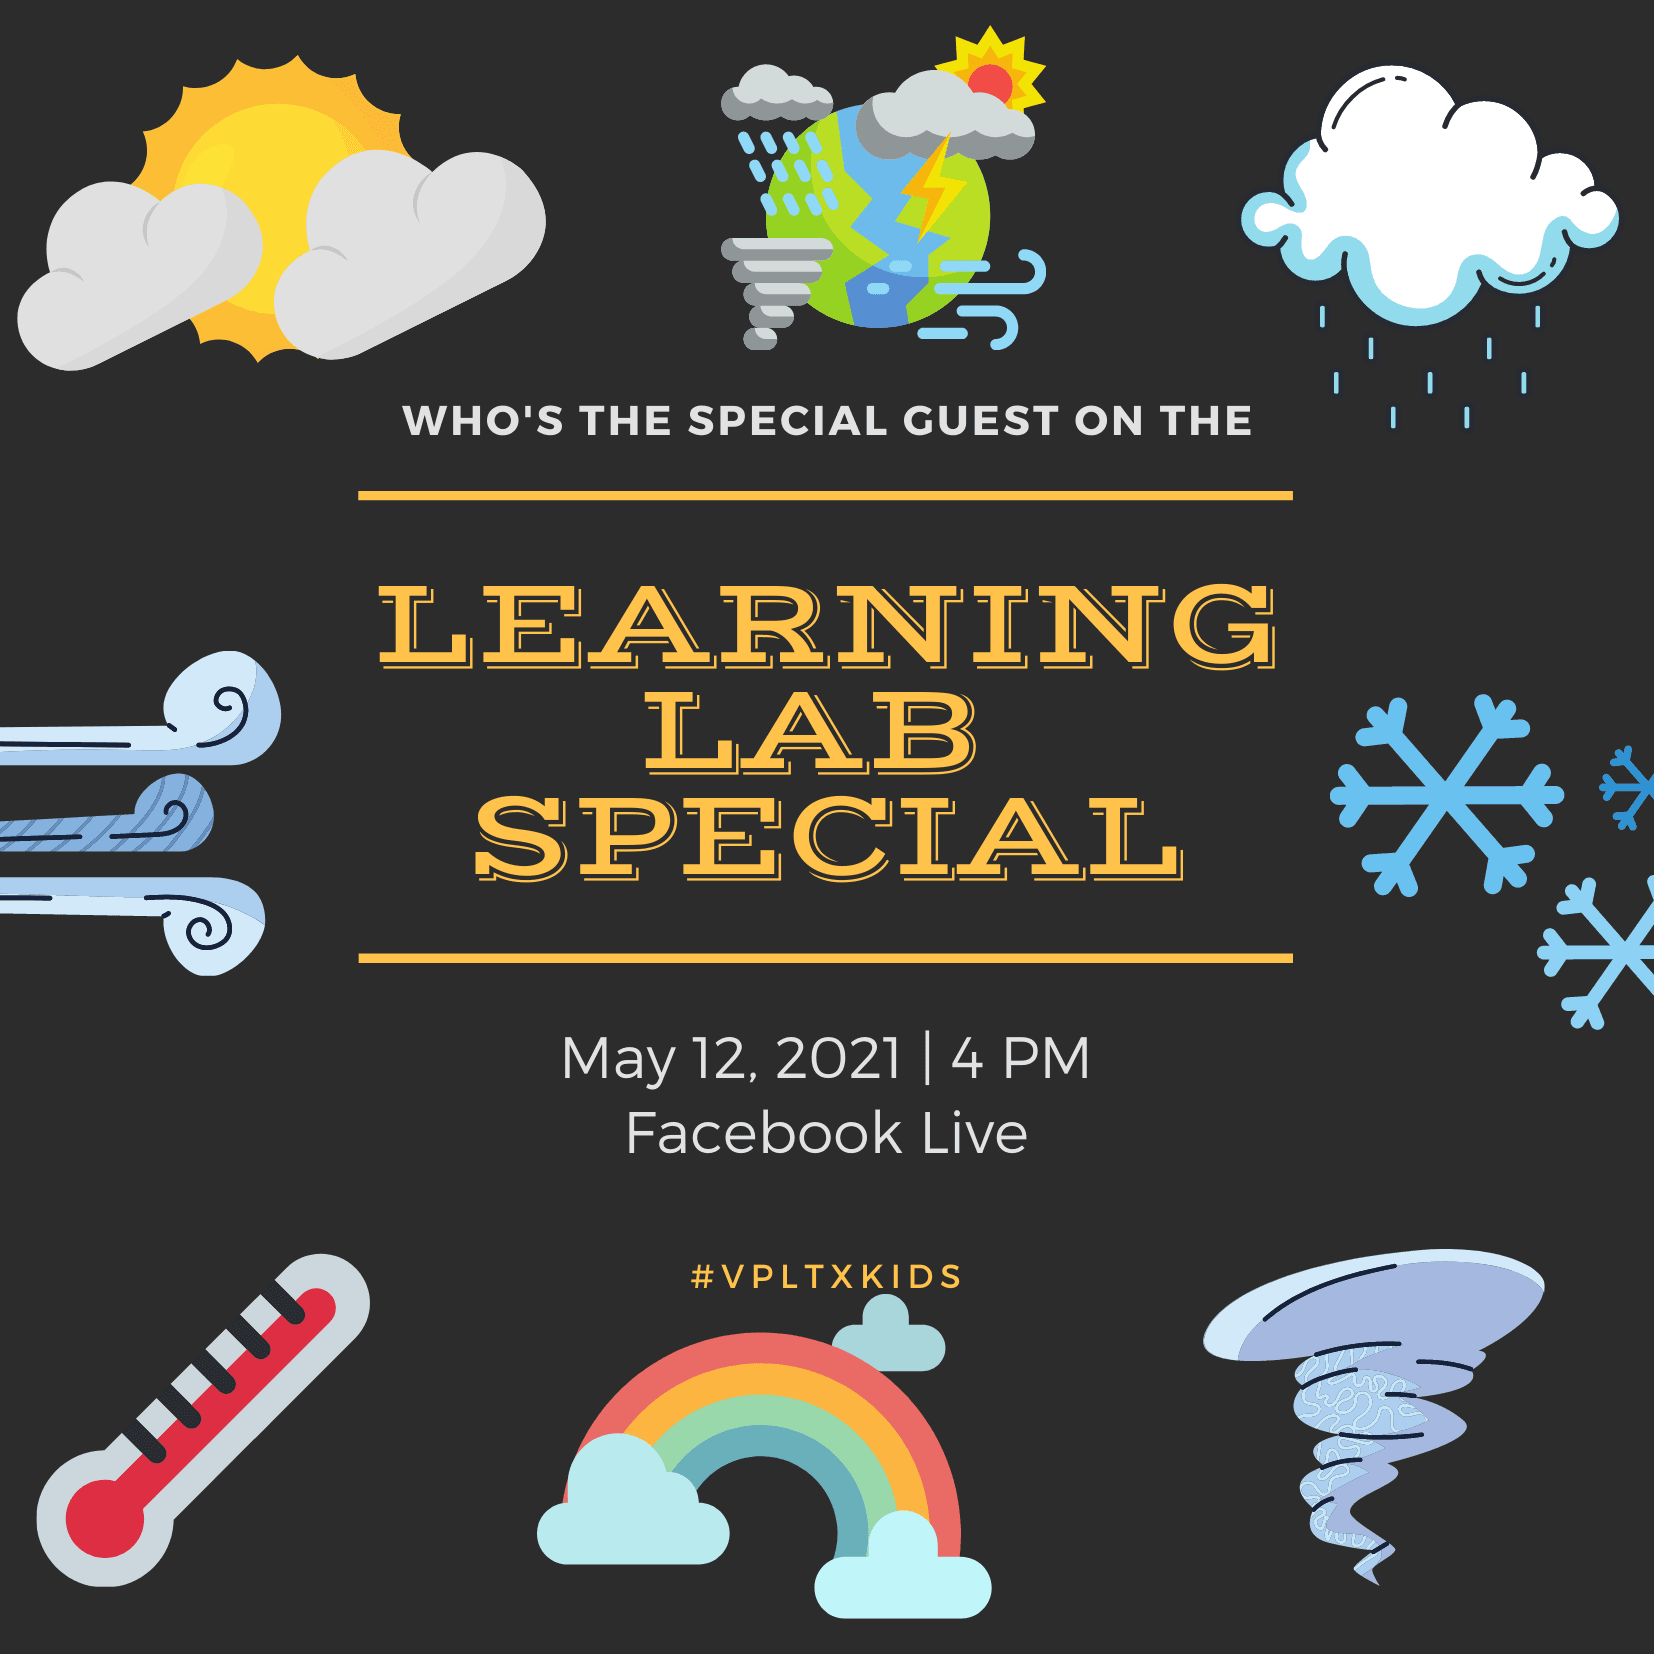 Who's the Special Guest on the Learning Lap Special, May 12th at 4PM in Facebook Live